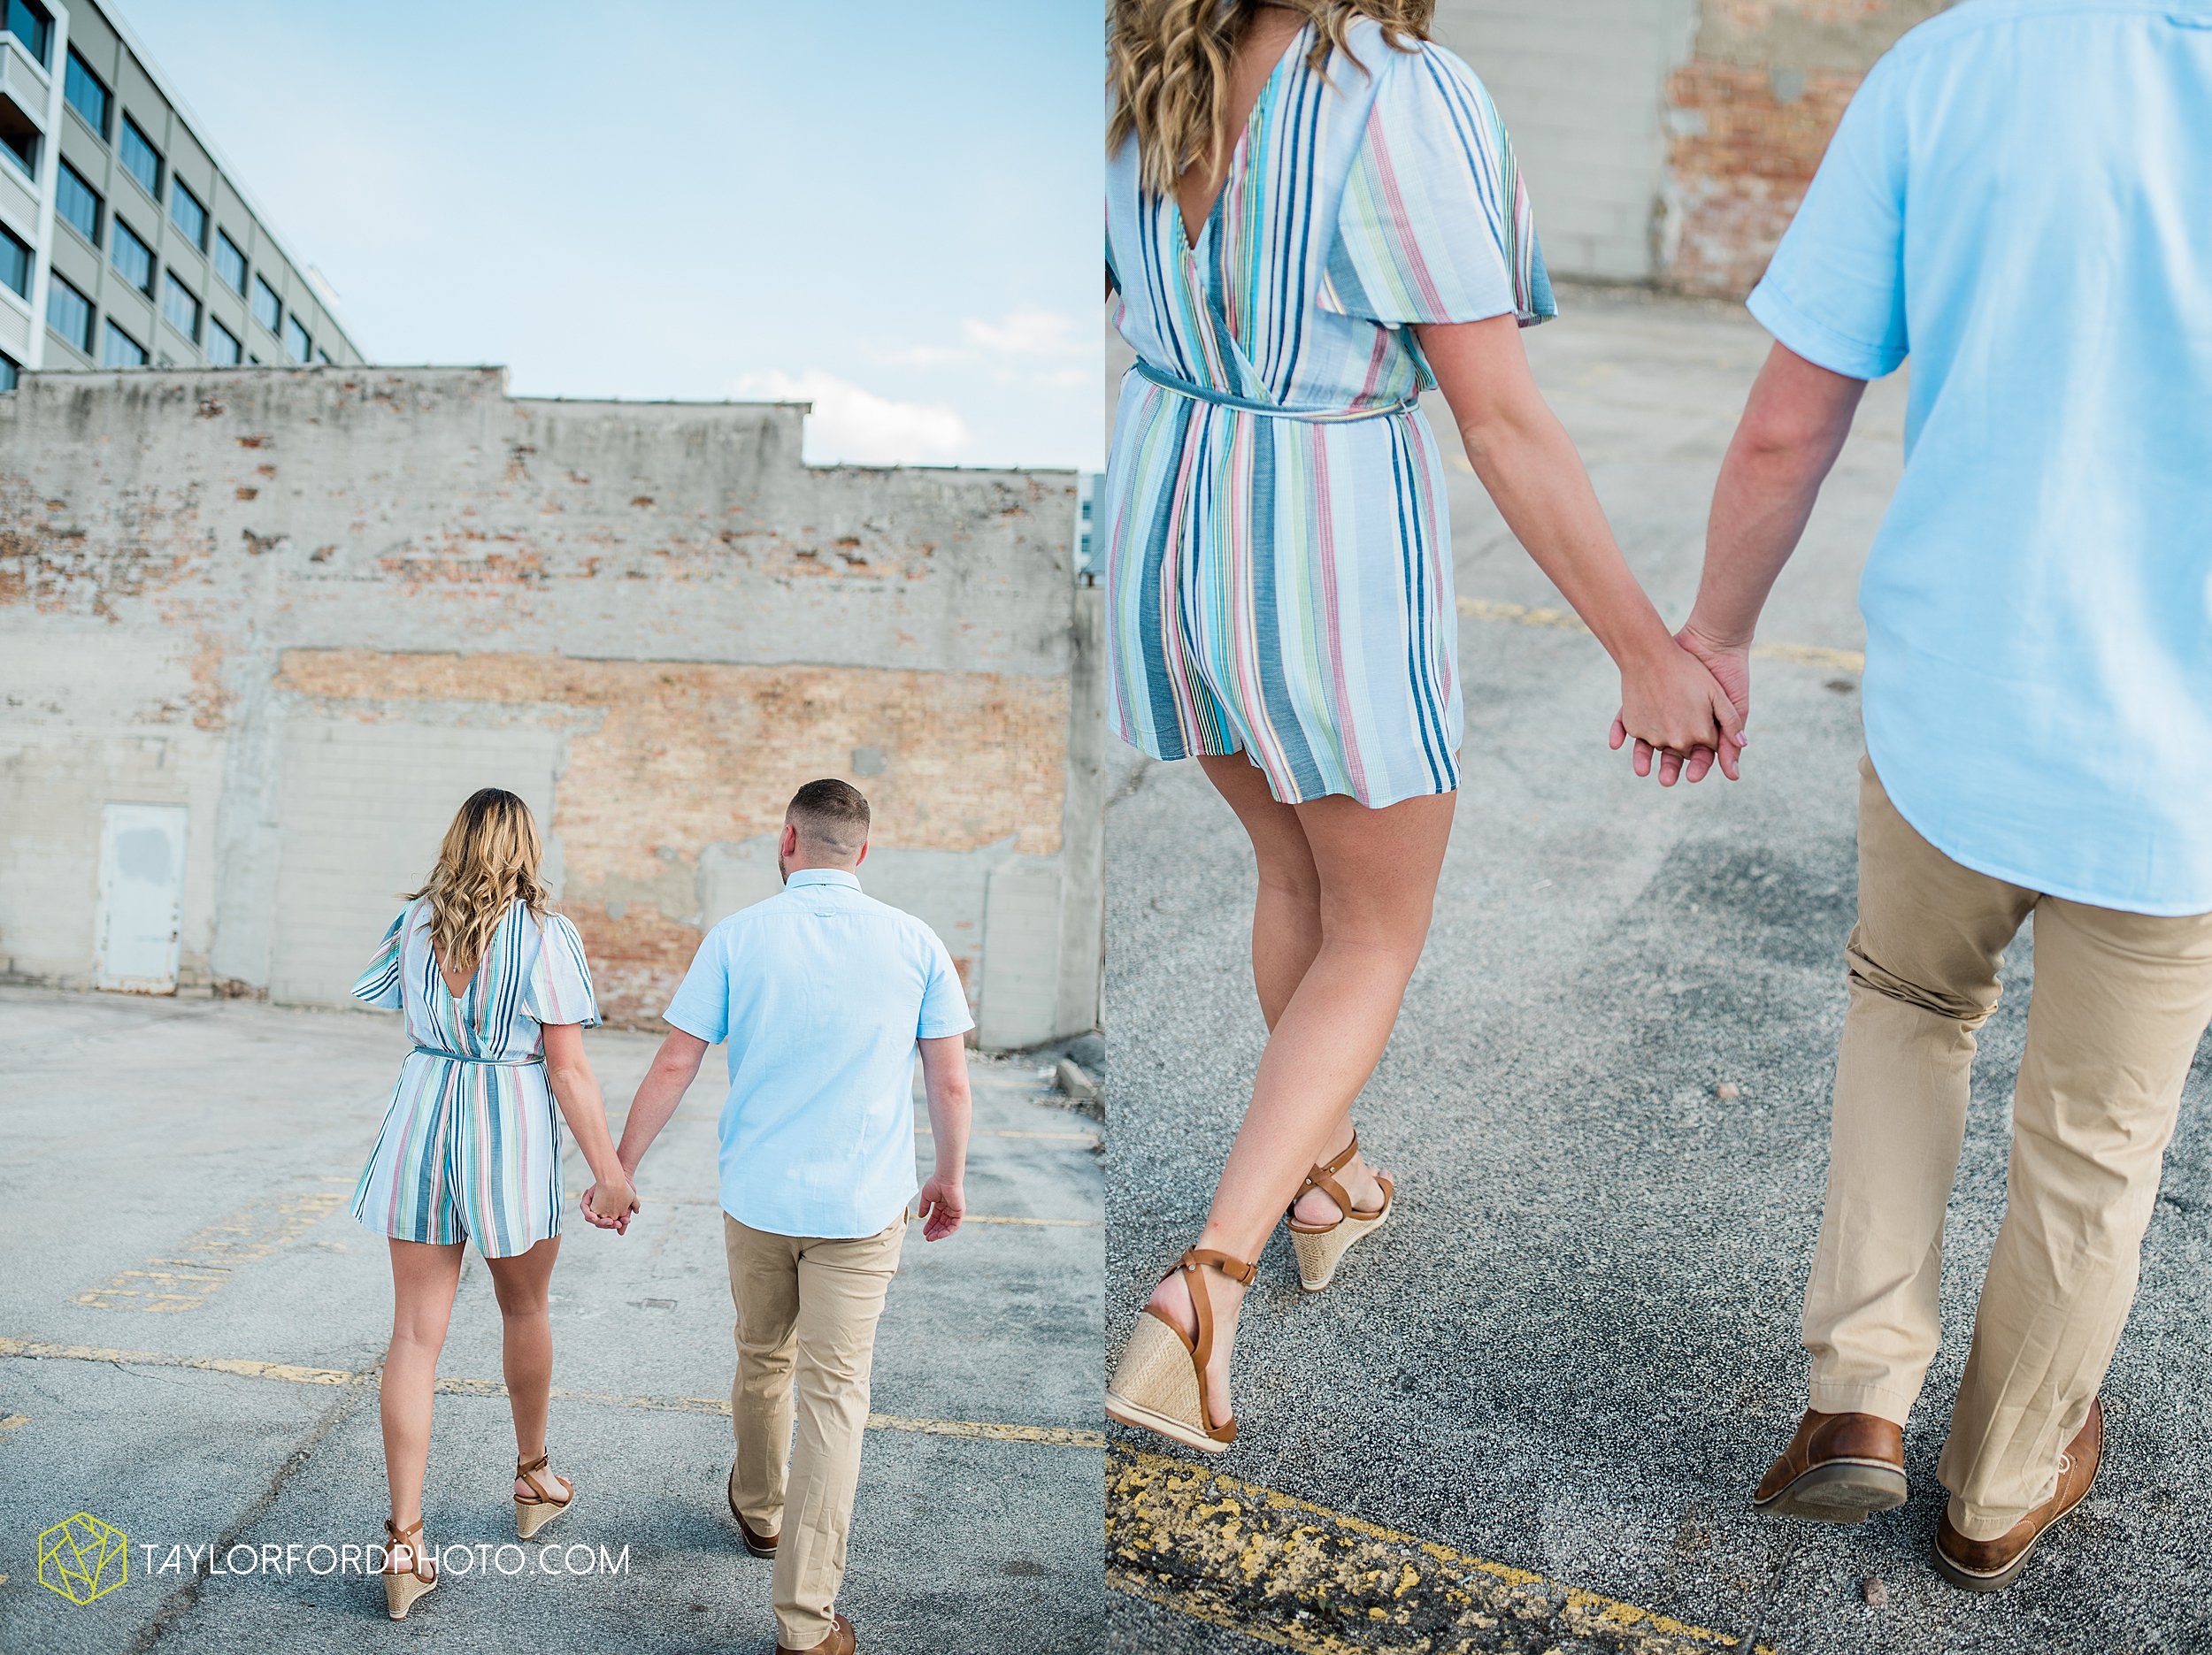 aly-taylor-downtown-fort-wayne-indiana-spring-engagement-photographer-photography-taylor-ford-hirschy-photographer_2574.jpg